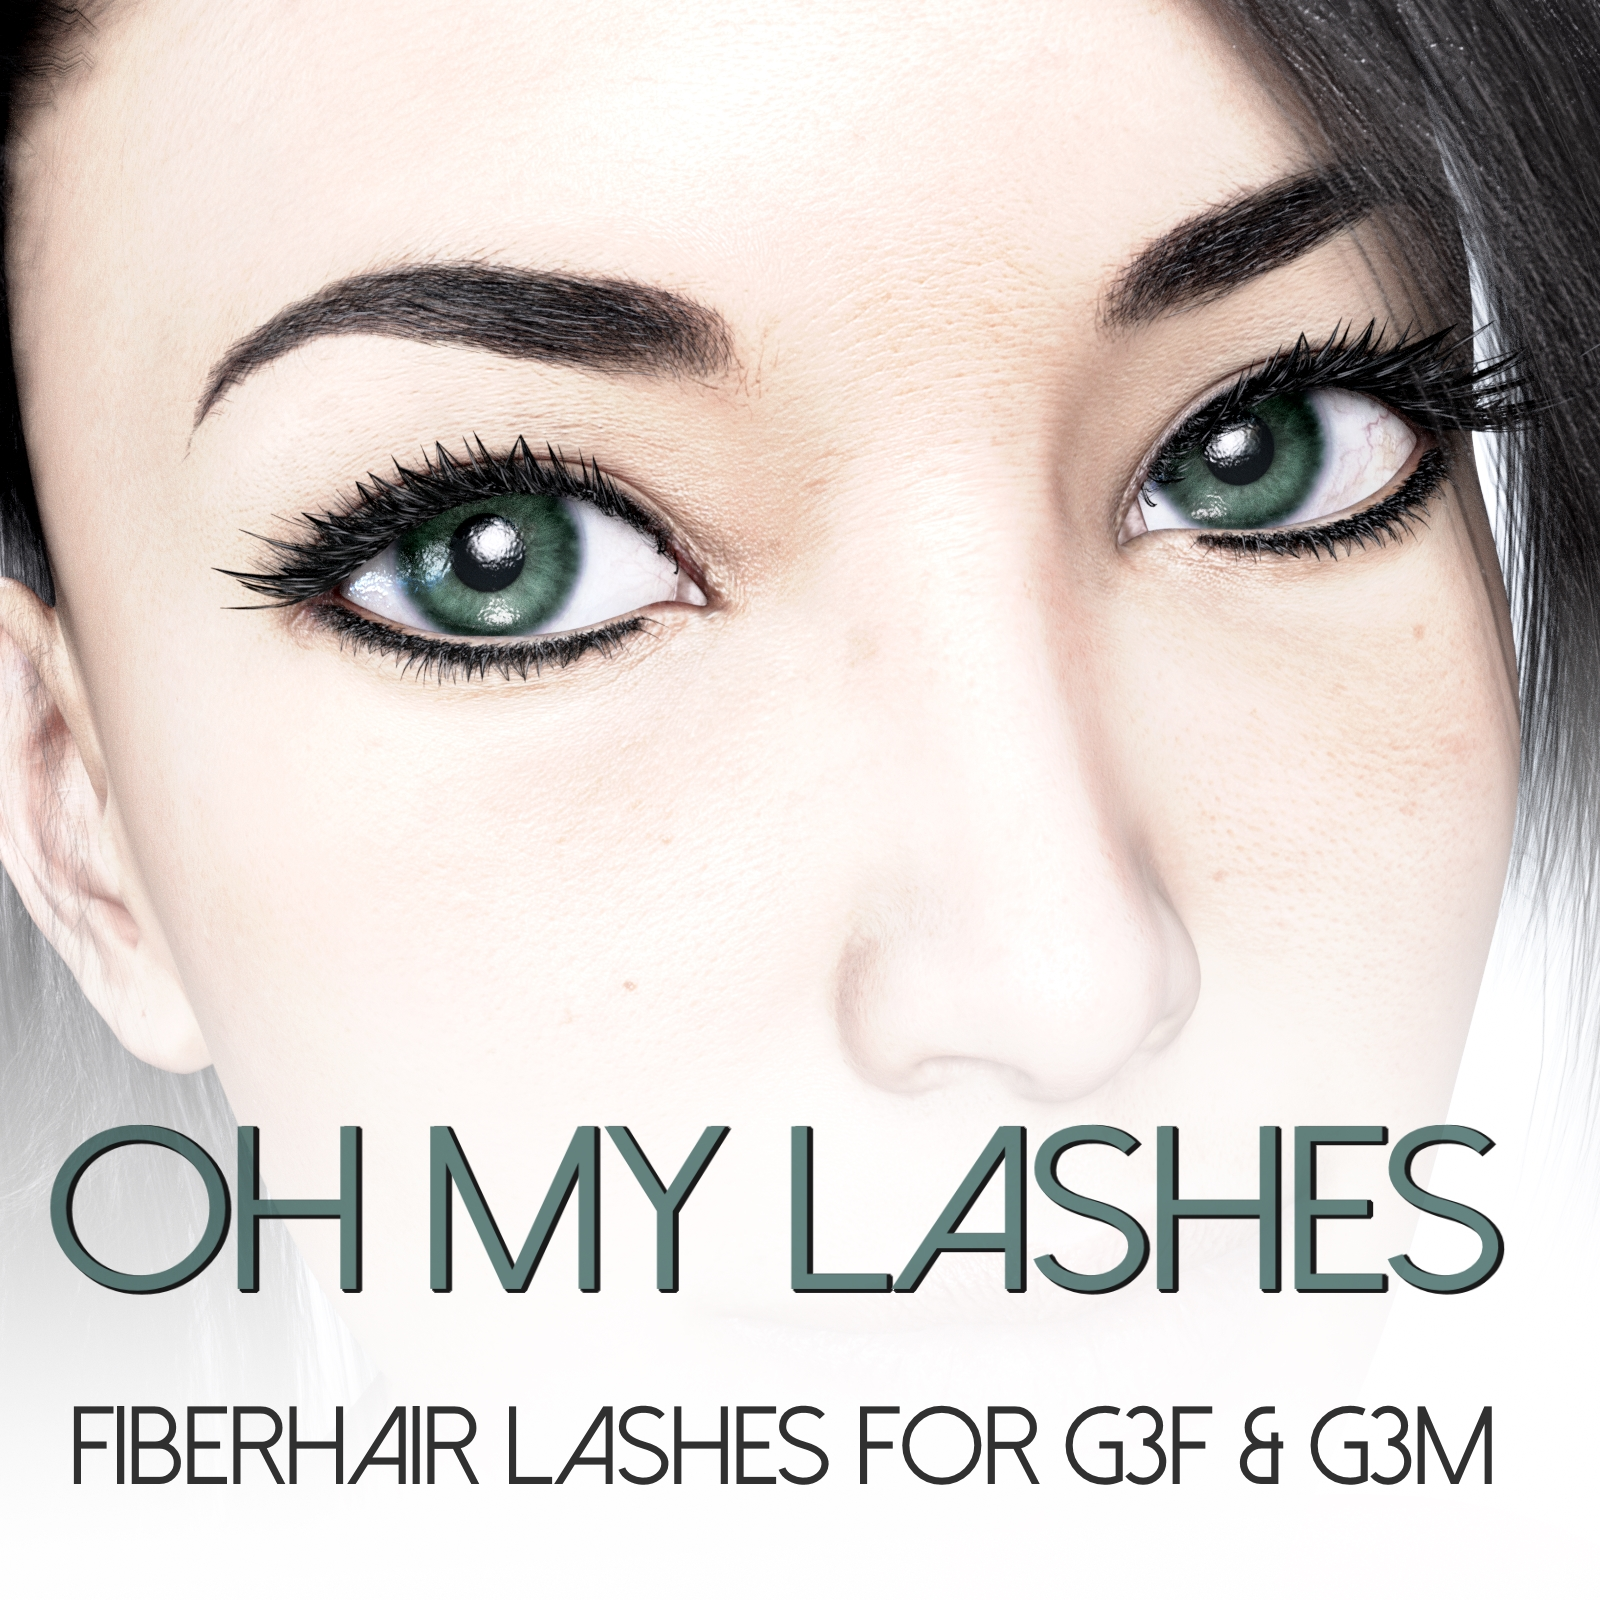 Oh My Lashes Fiberhair Eyelashes For G3f G3m 3d Figure Assets